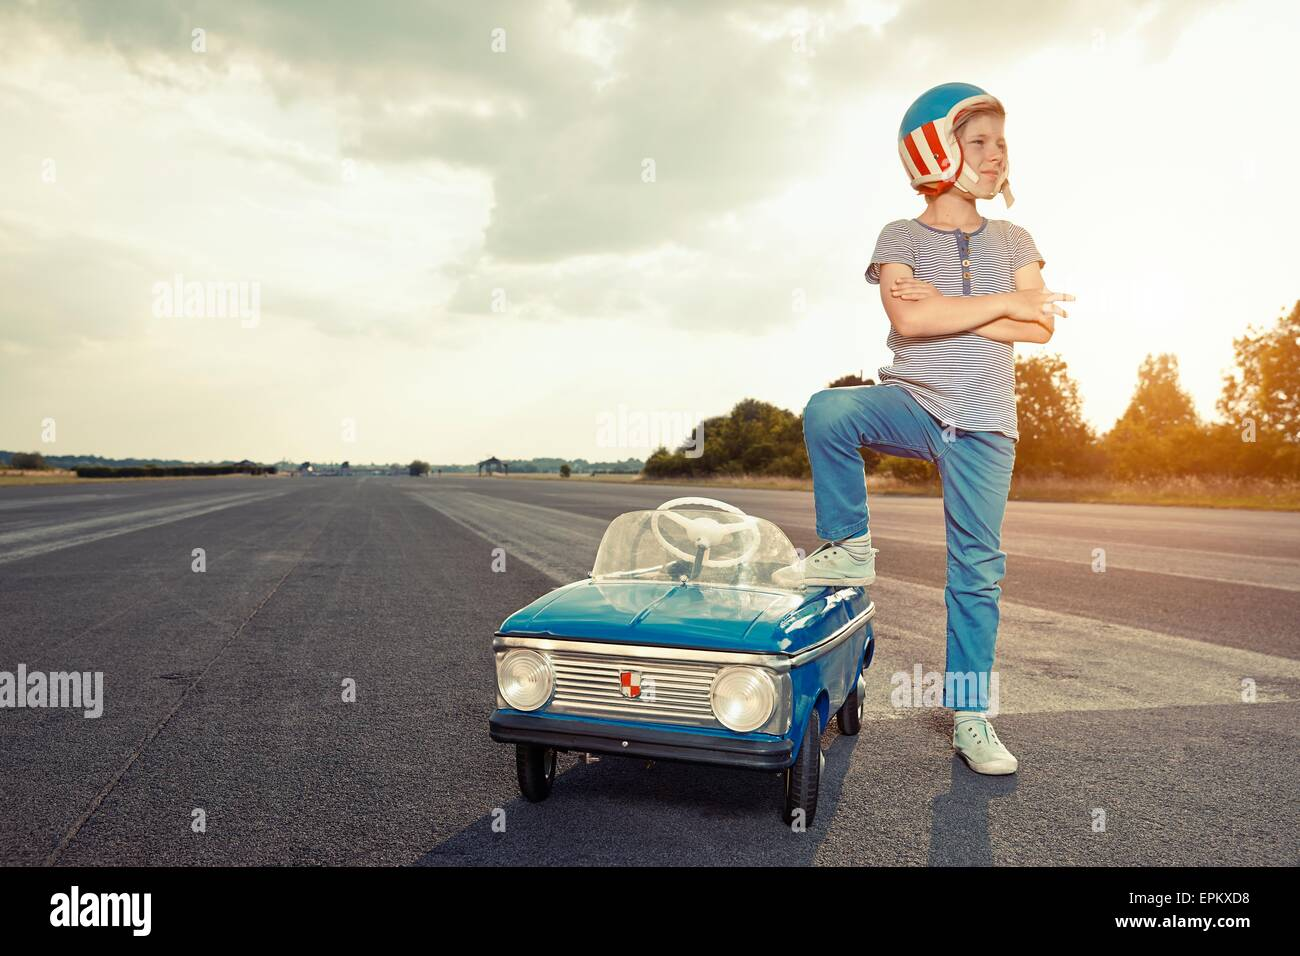 Boy with pedal car on race track - Stock Image